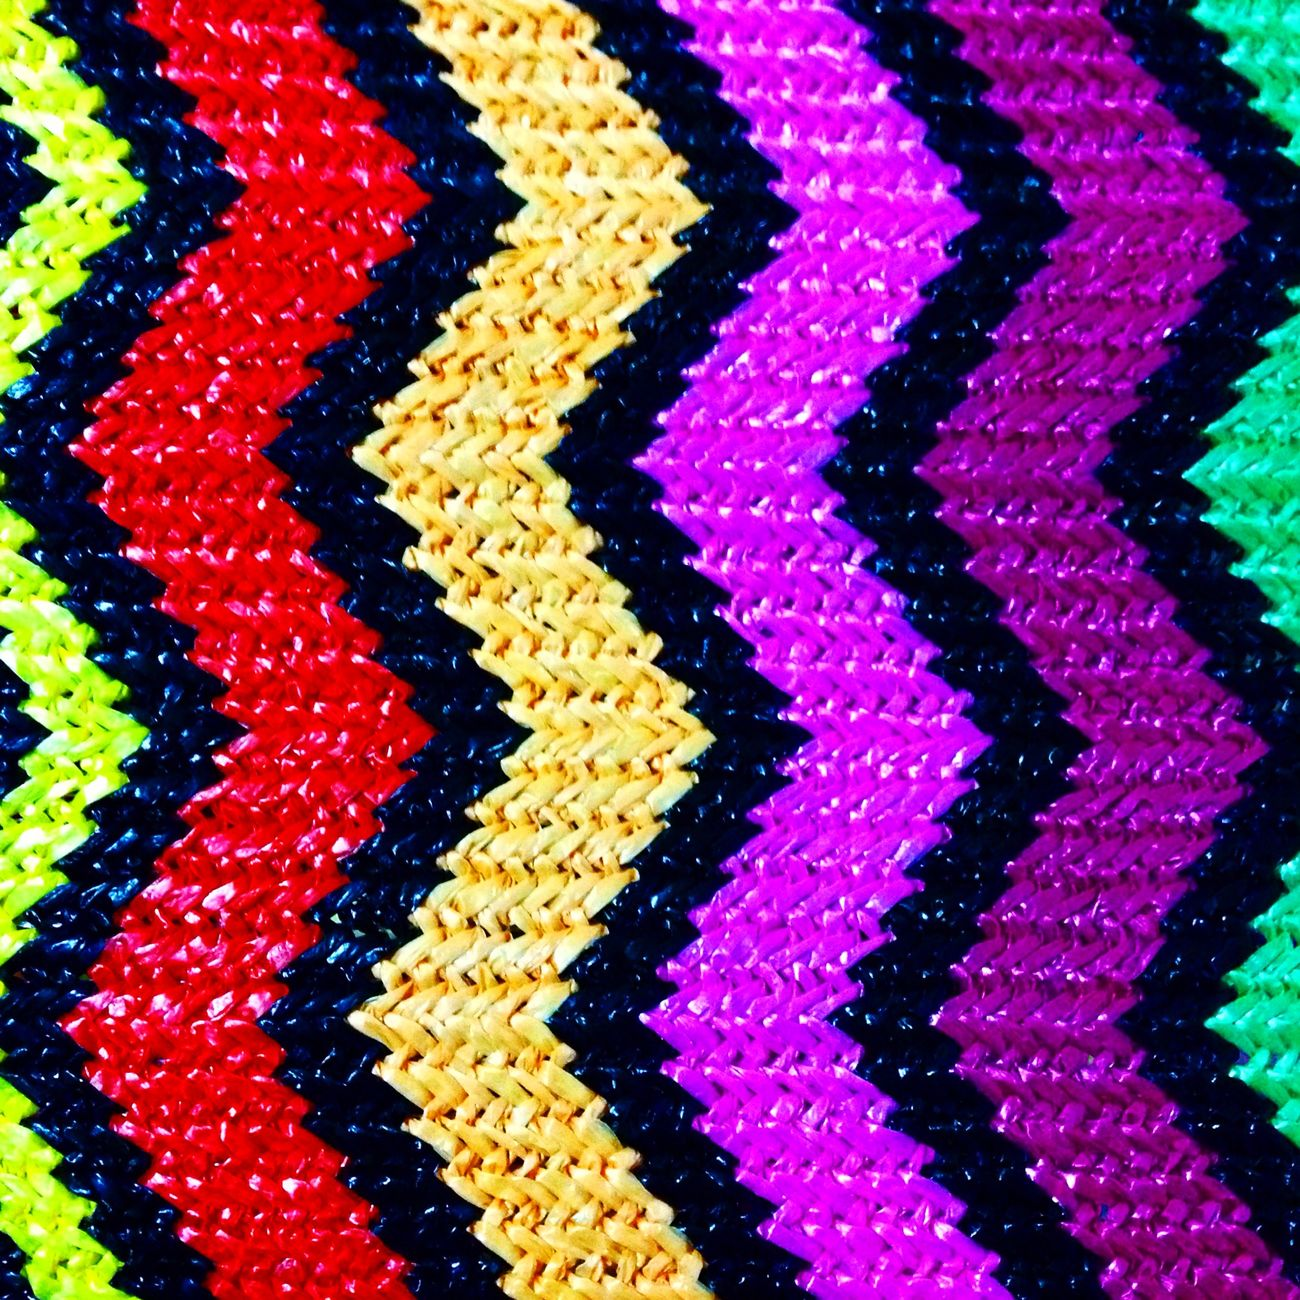 New in my studio💖 Material Design Artisan Peruvian Embroidery Zigzag Colors Fabric Bagdesigner Laviniafenton